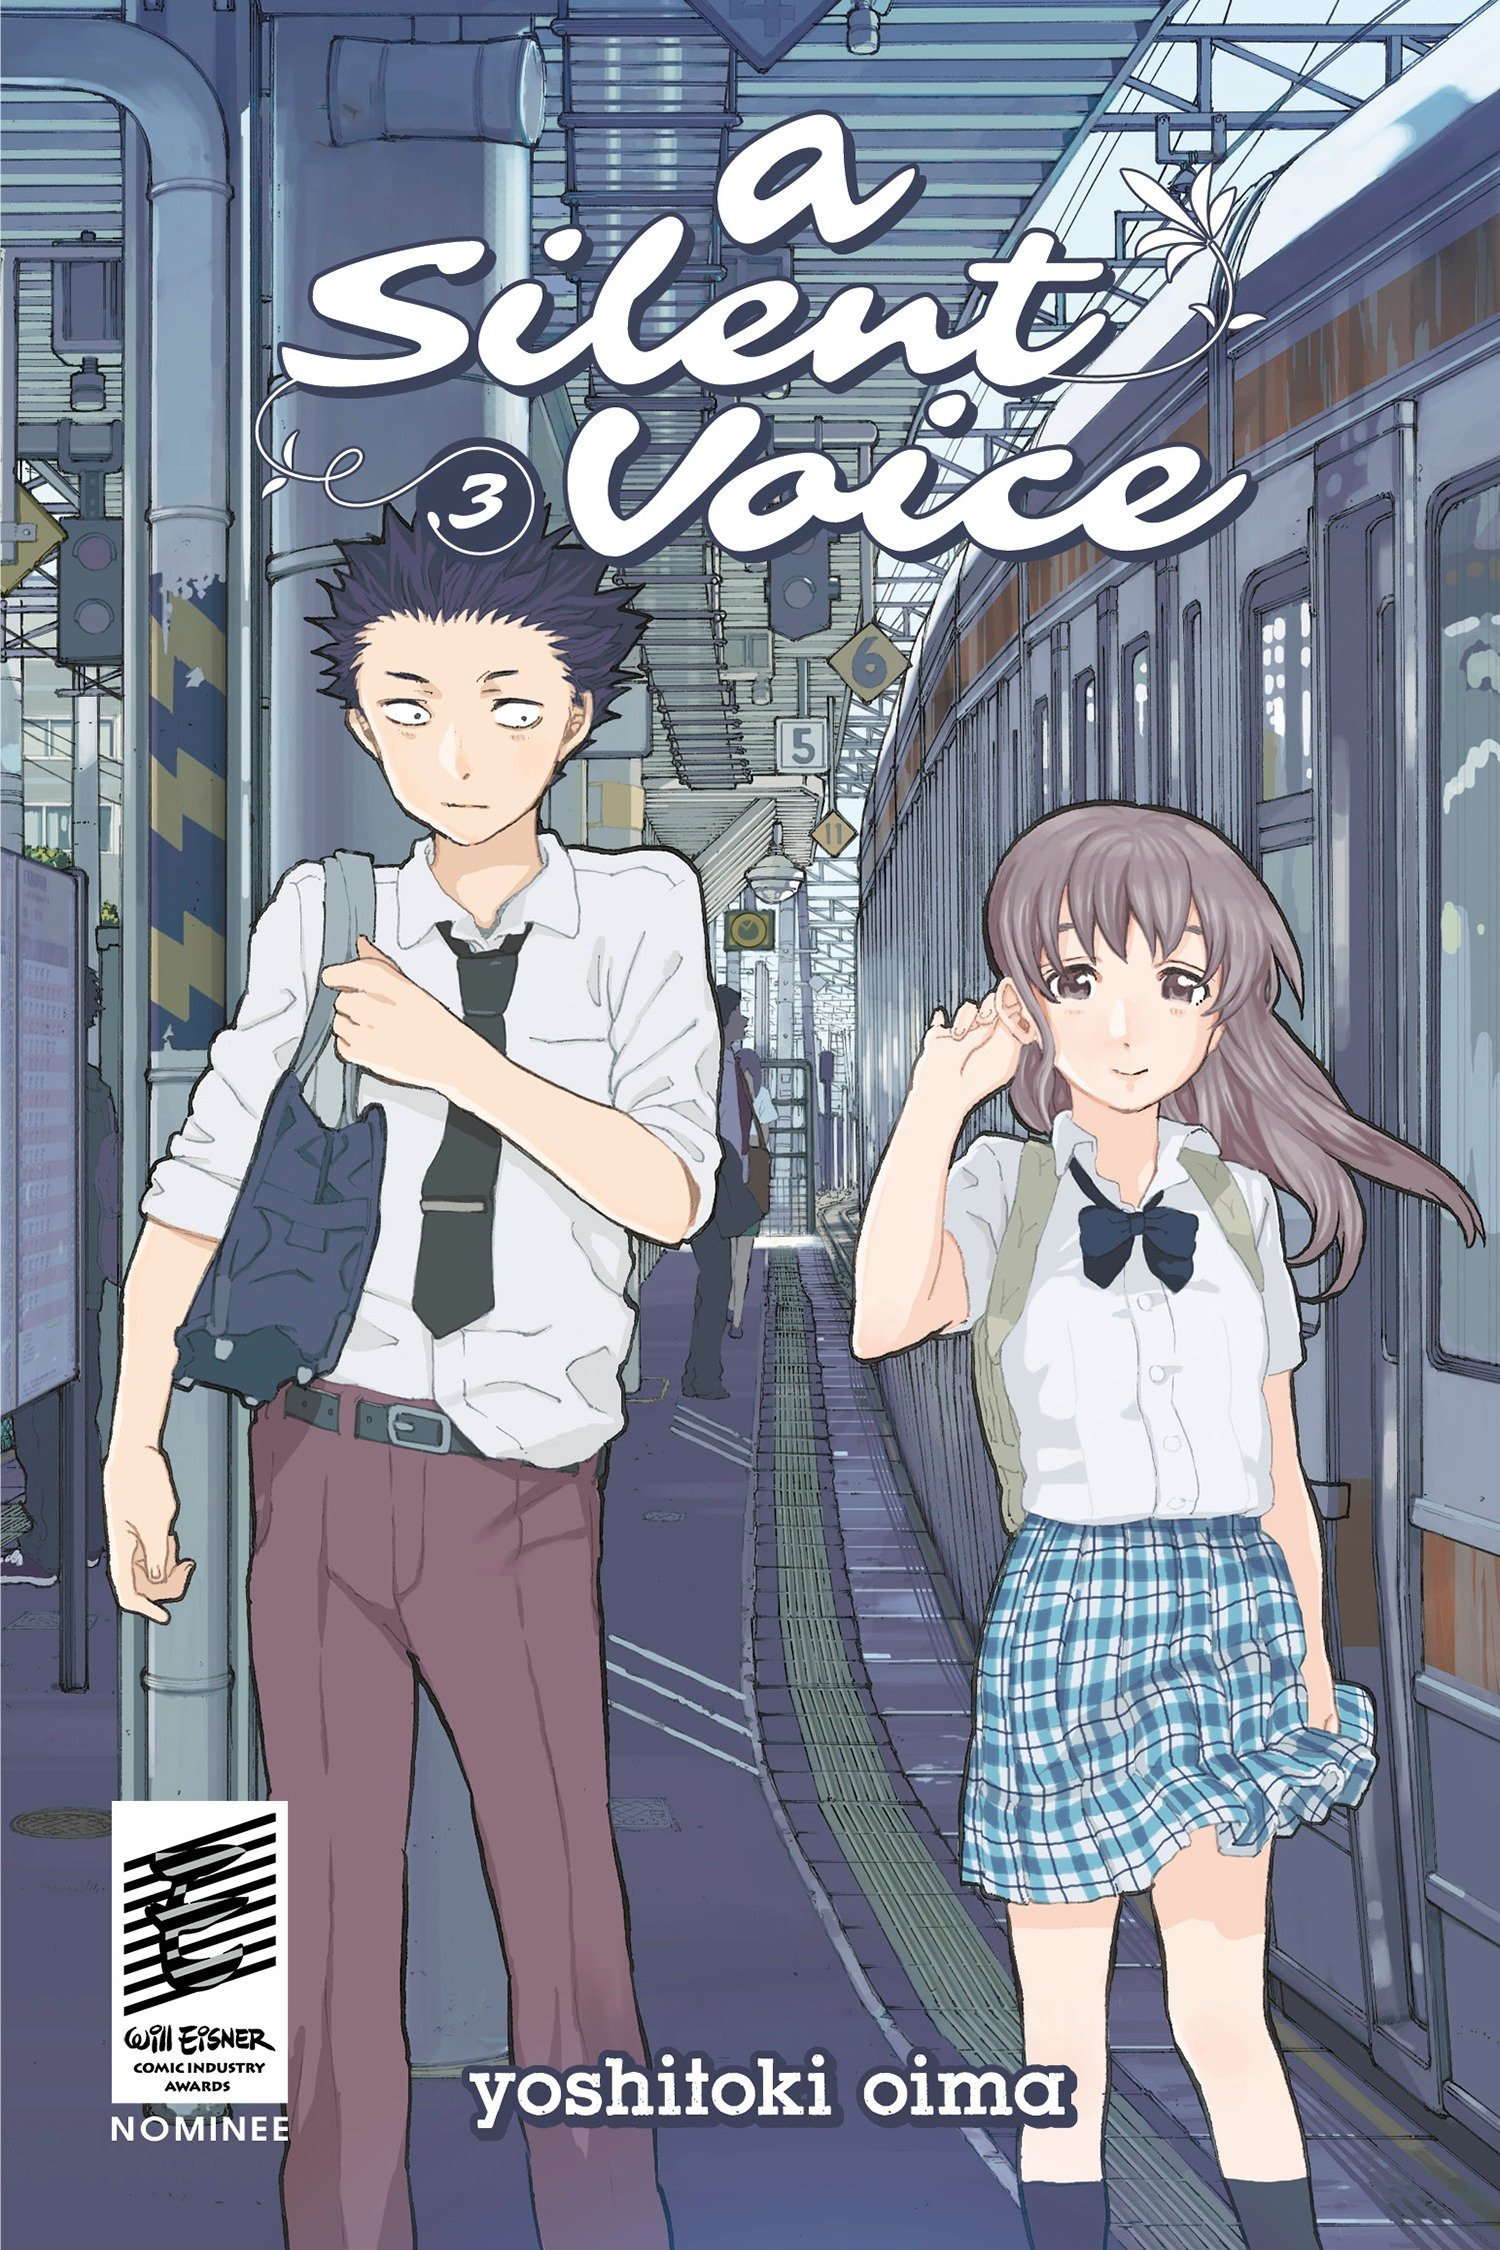 The 100 Best Comics of the Decade: A Silent Voice